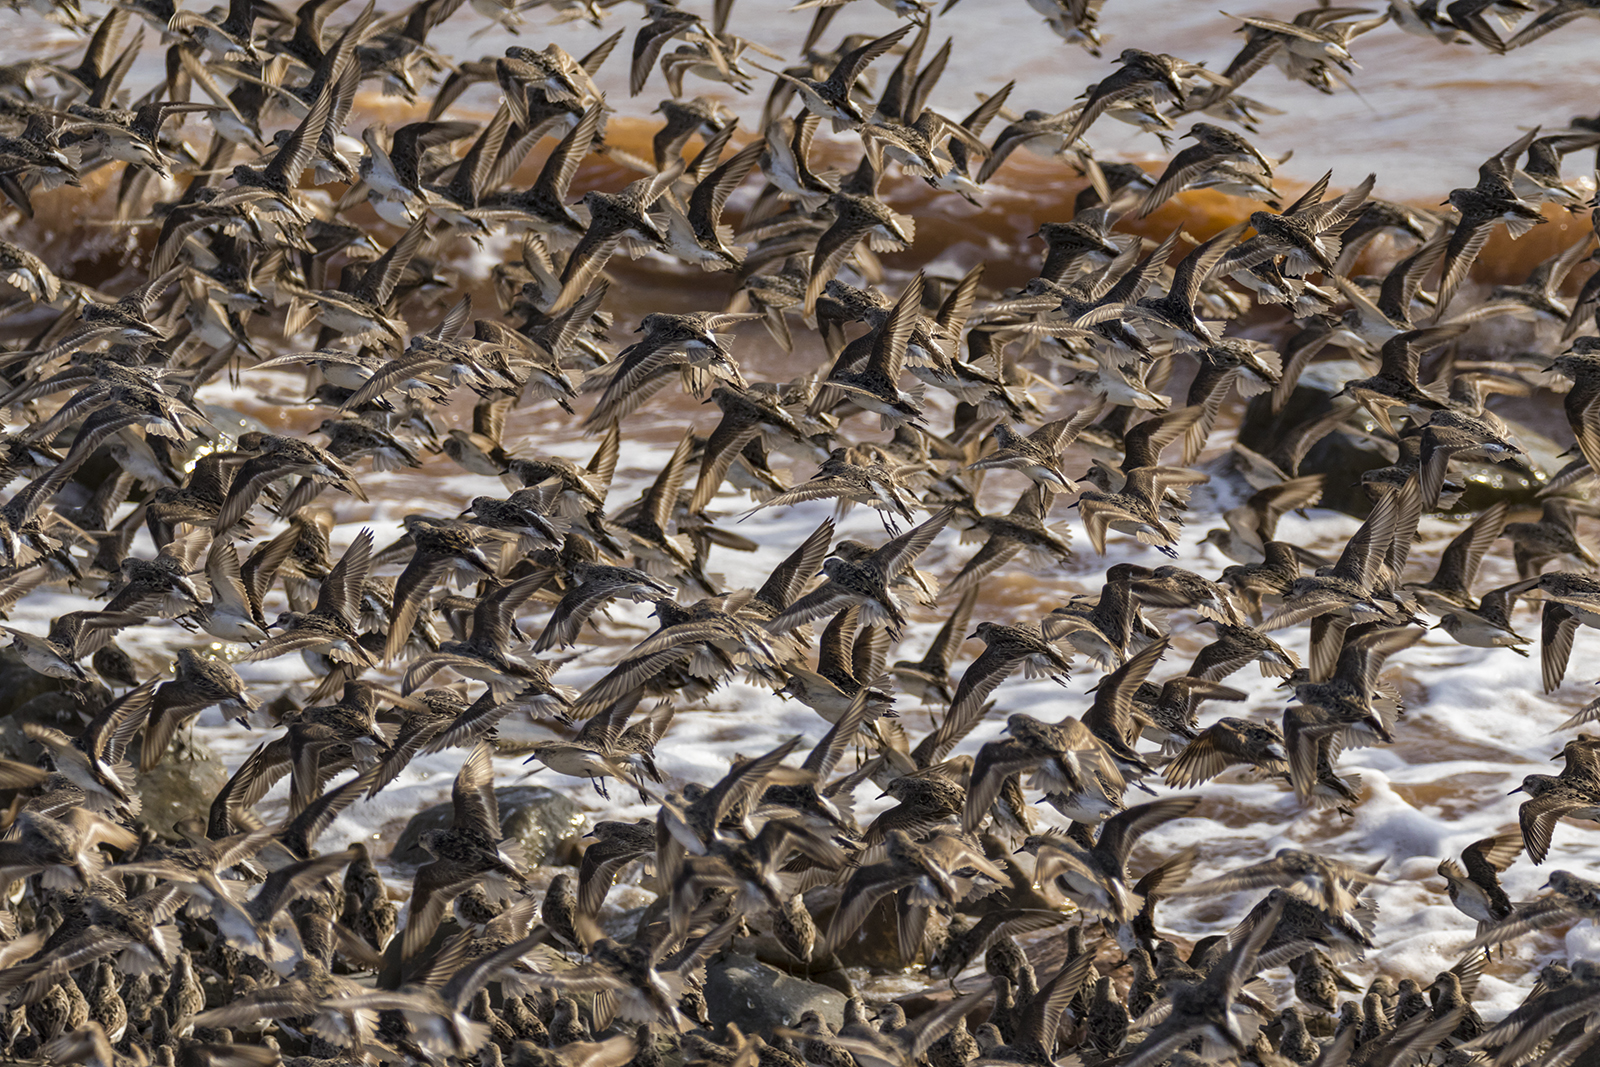 Semipalmated_Sandpipers-07-BRimages.ca